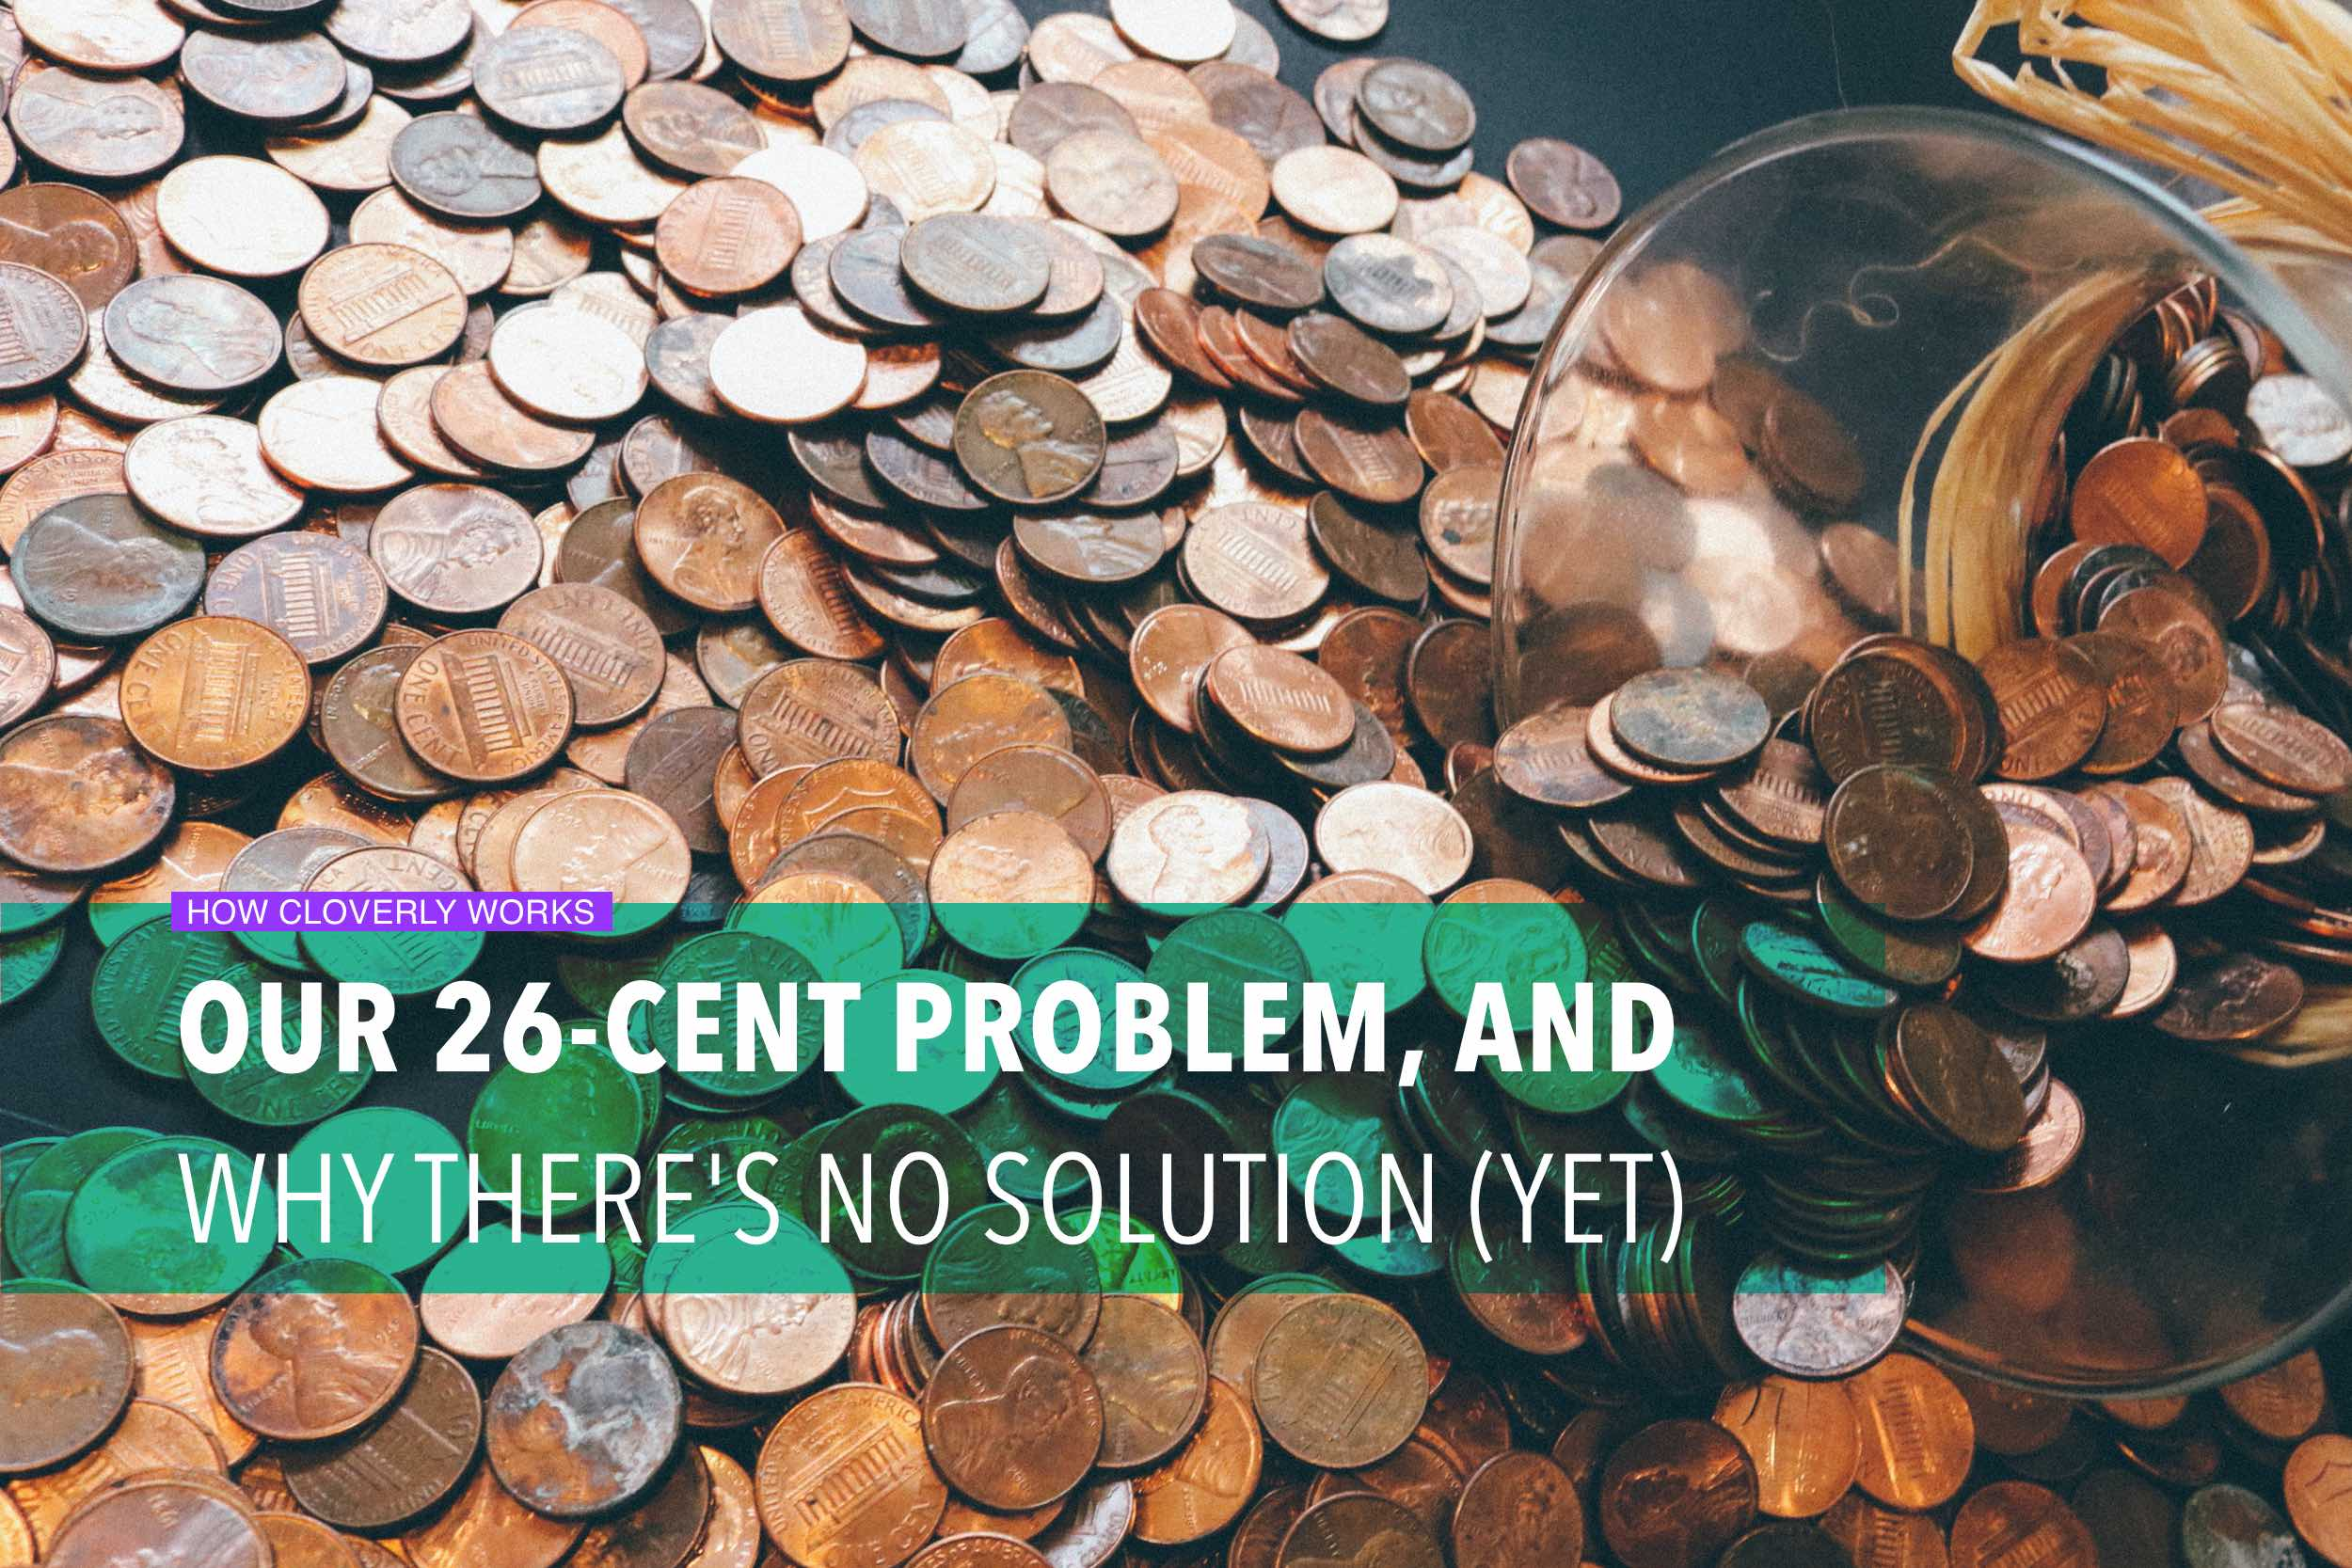 Our 26-cent problem, and why there's no solution (yet)